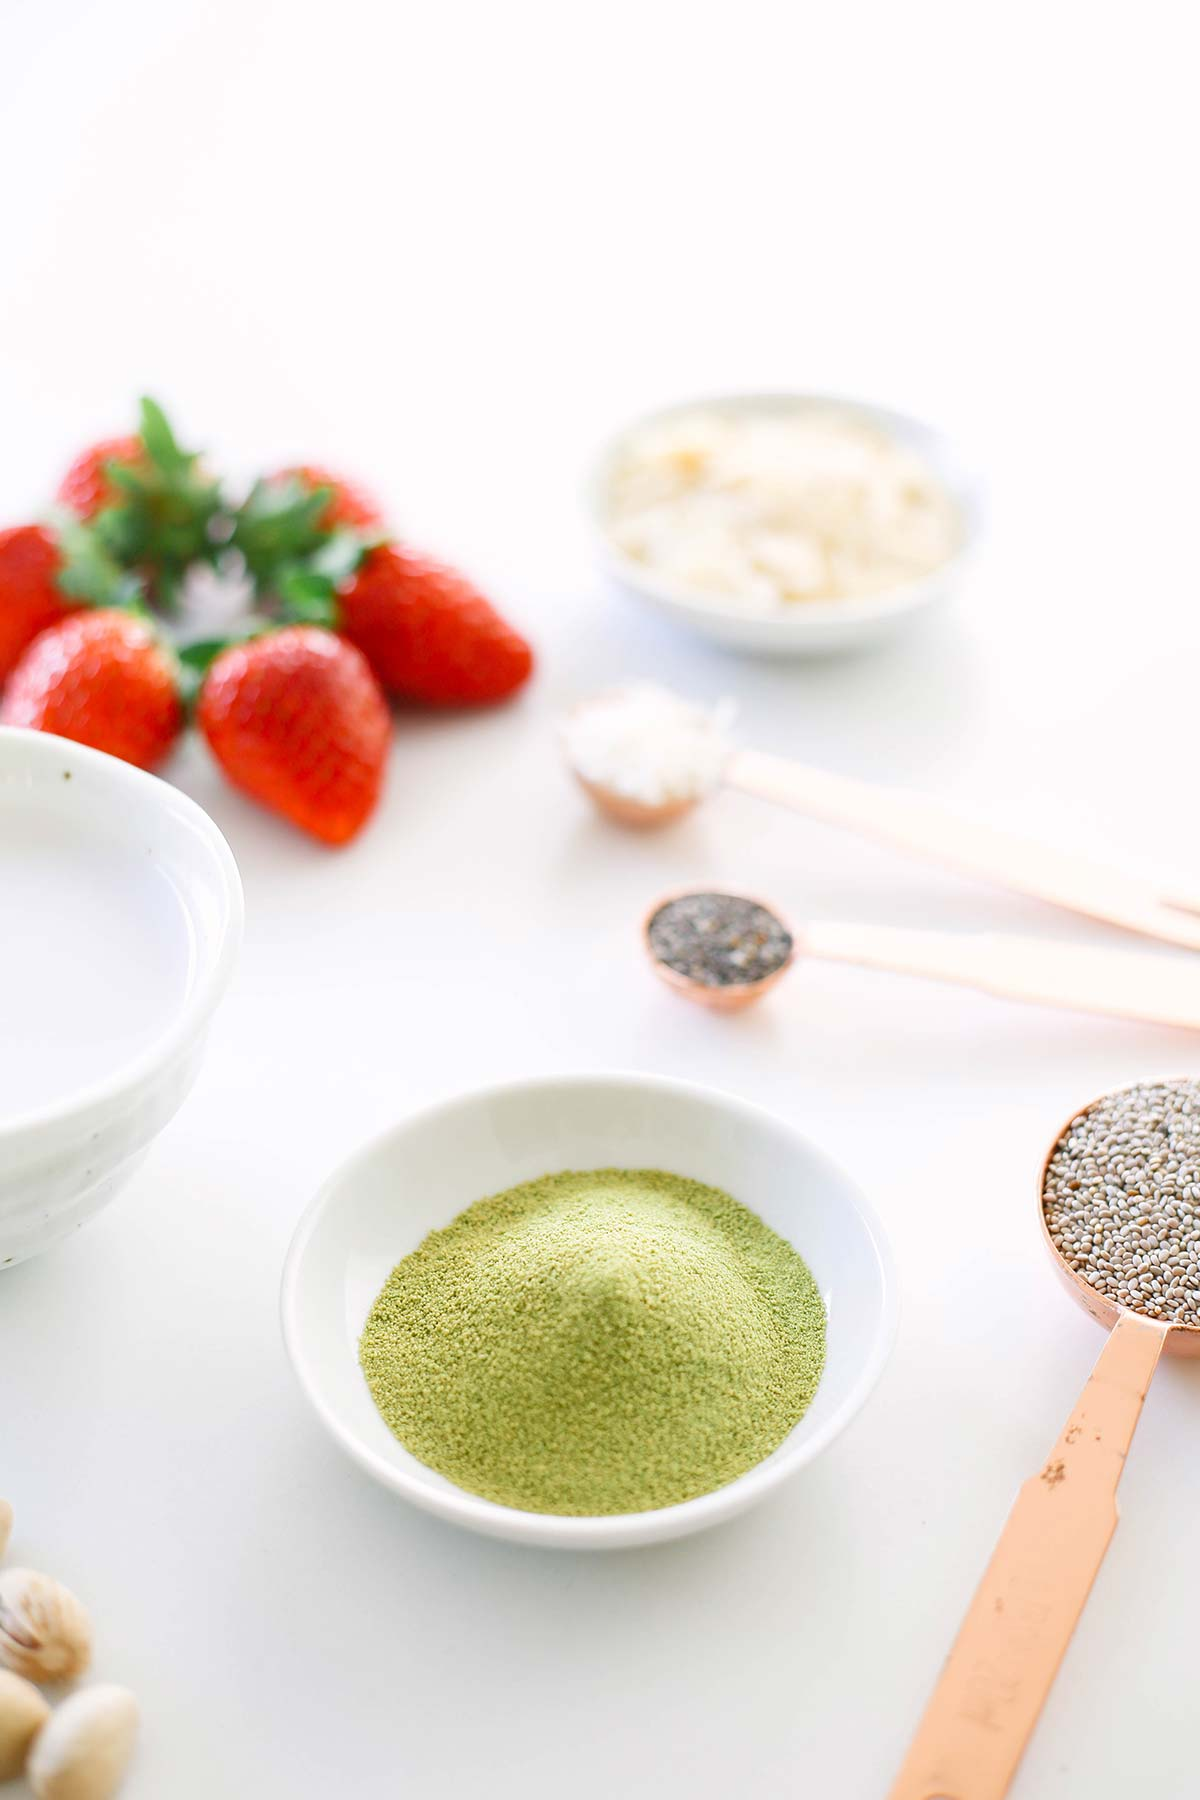 Keto Matcha Chia Pudding for ketogenic and low carb. Easy recipe with chia seeds and coconut milk. keto, matcha, keto chia pudding, matcha chia pudding, keto chia seed recipes, keto chia seed pudding, keto chia pudding low carb, keto breakfast, matcha recipes, keto recipes, ketogenic diet, keto dessert, keto easy recipes, keto easy, matcha pudding, keto meals, keto quick meals, keto recipes easy, low carb, low carb recipes, low carb chia pudding, lchf, lchf recipes